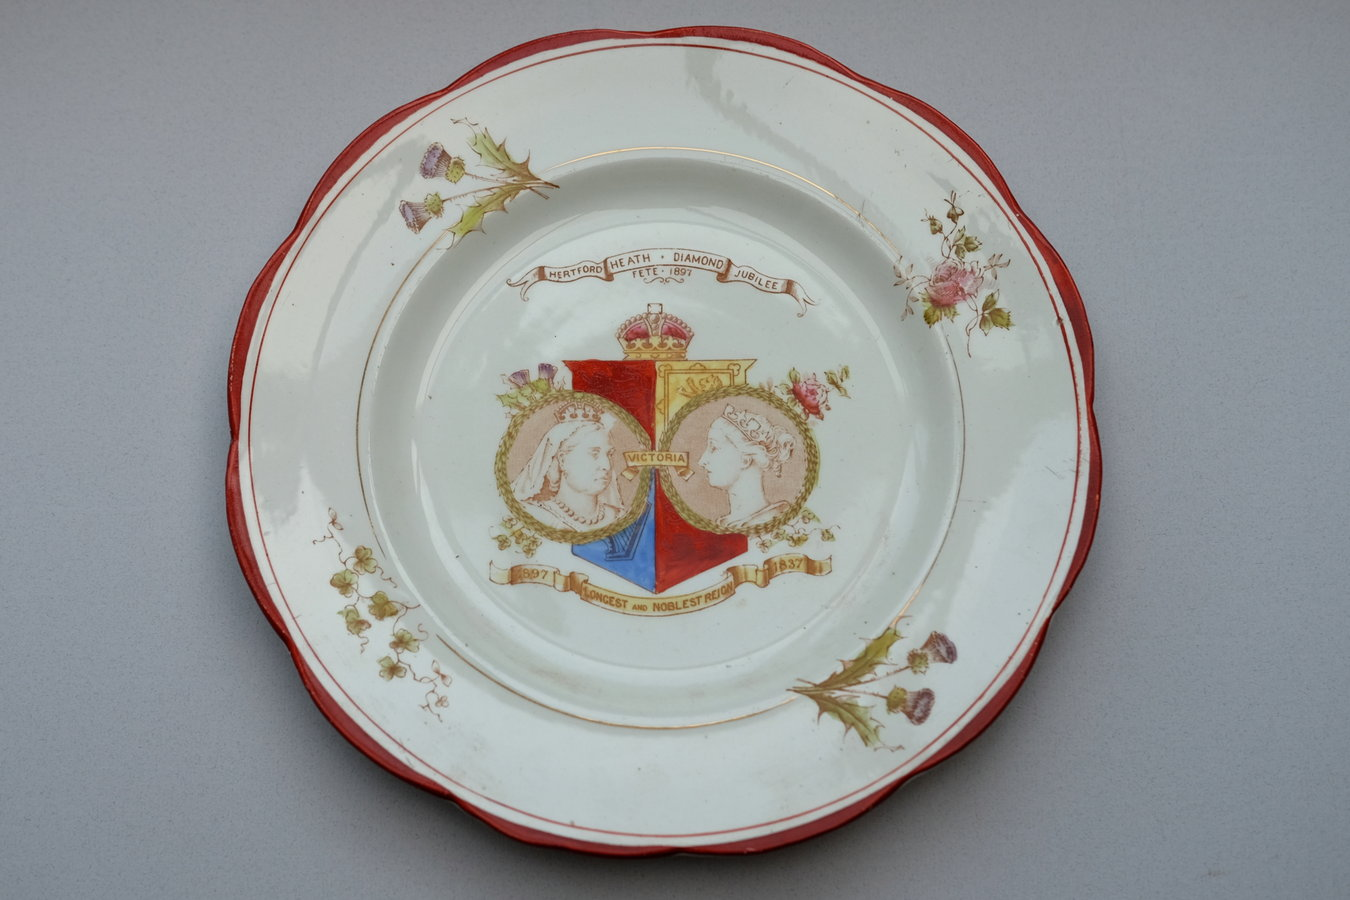 Hertford Heath Victorian Diamond Jubilee Plate